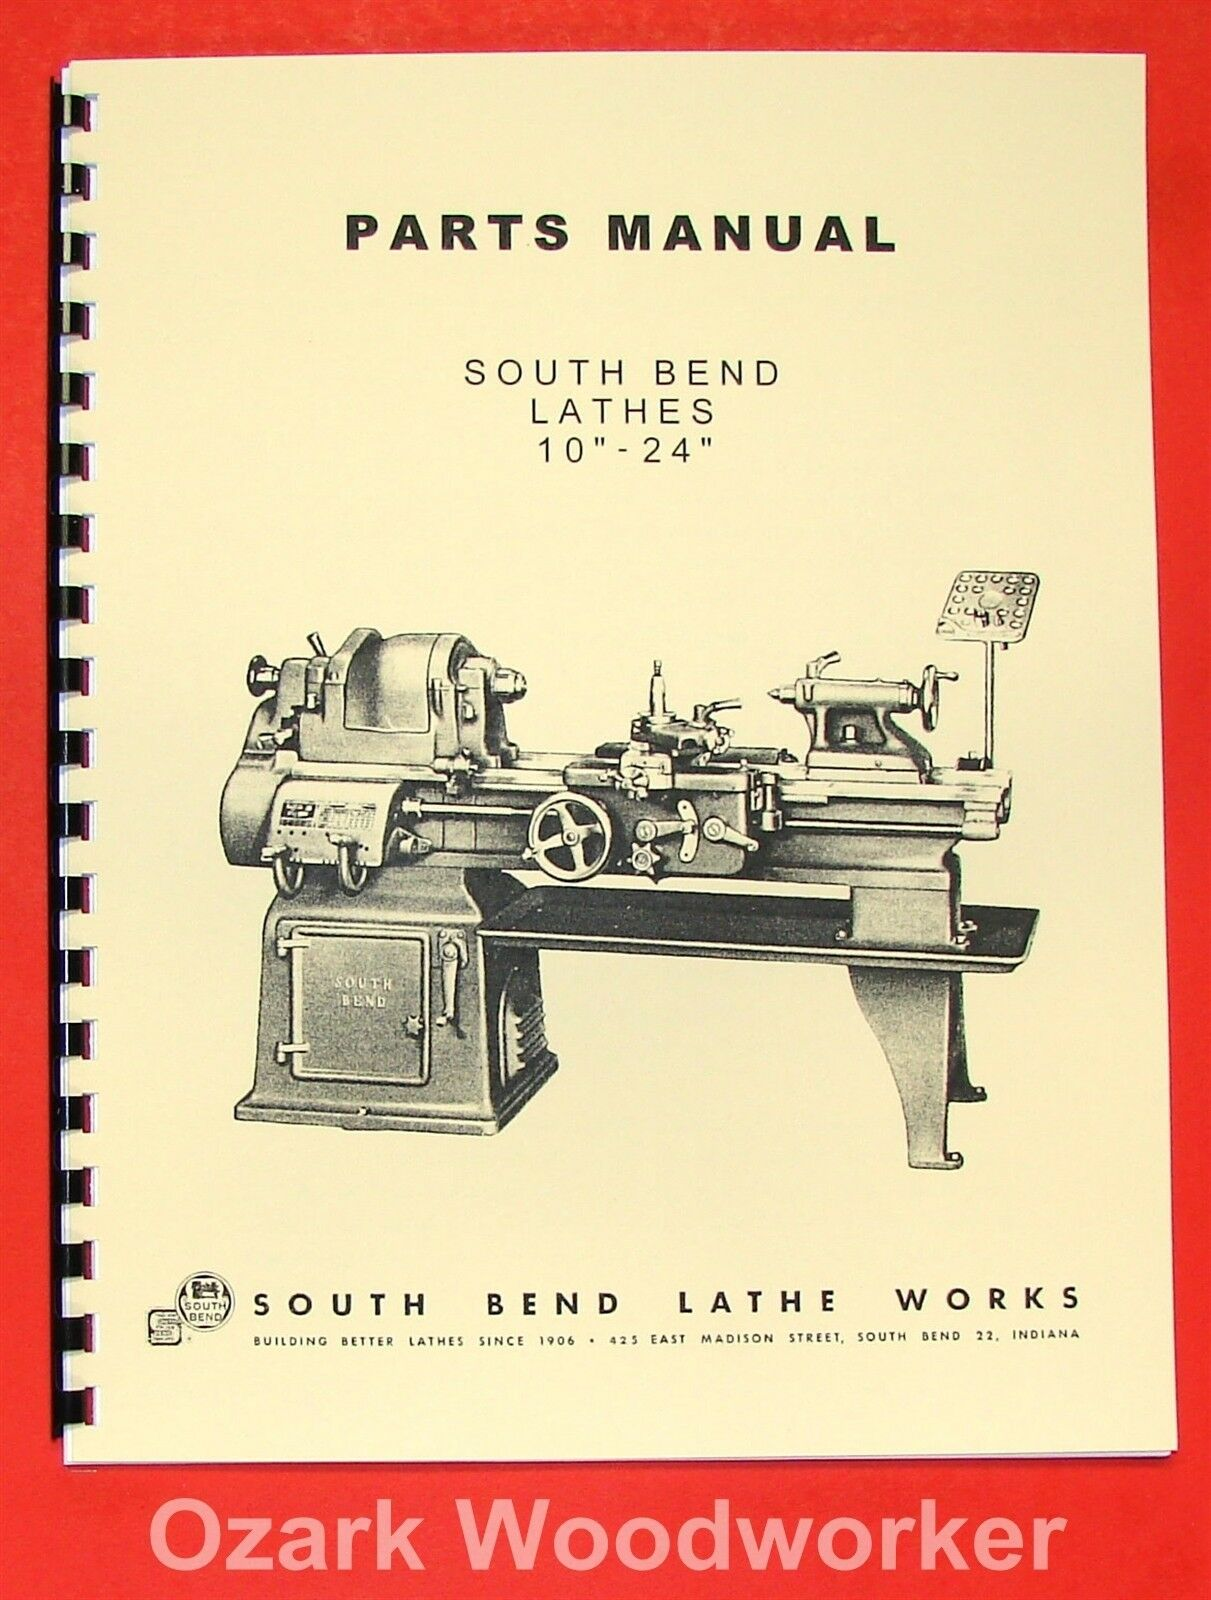 South Bend 13 Lathe Parts Diagram Trusted Wiring Diagrams 10 14 5 16 24 Lathes Manual 0664 Old